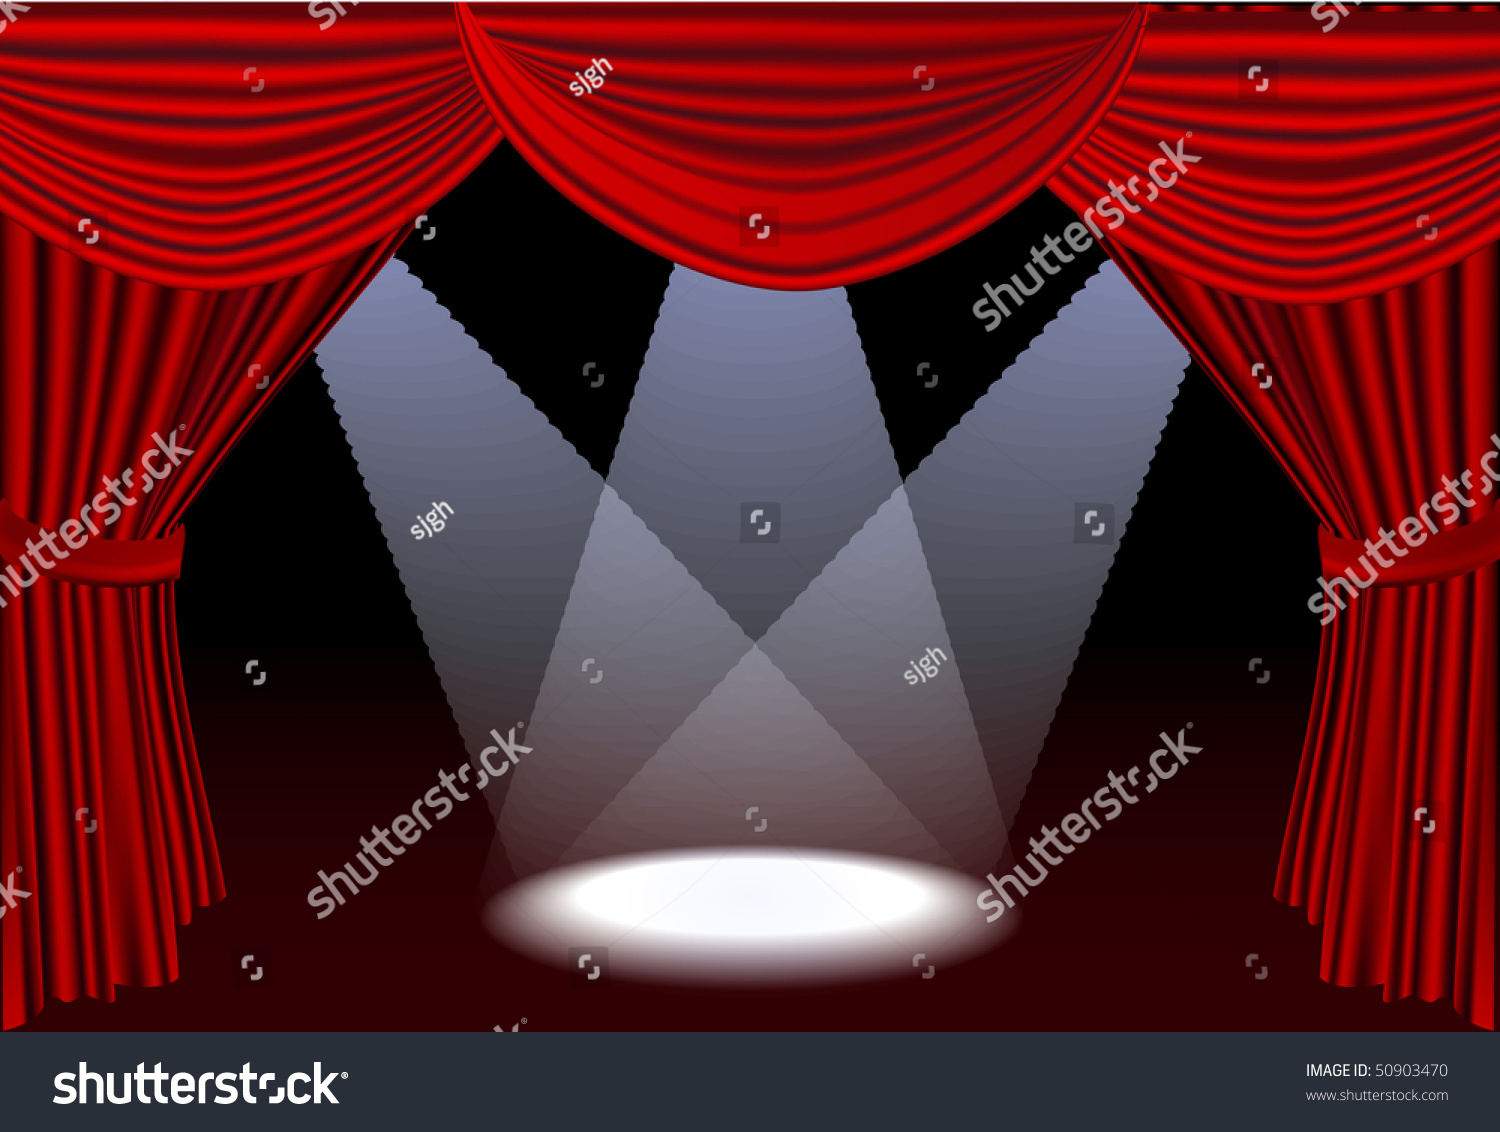 Red stage curtains - Open Red Stage Curtains With Three Spotlights